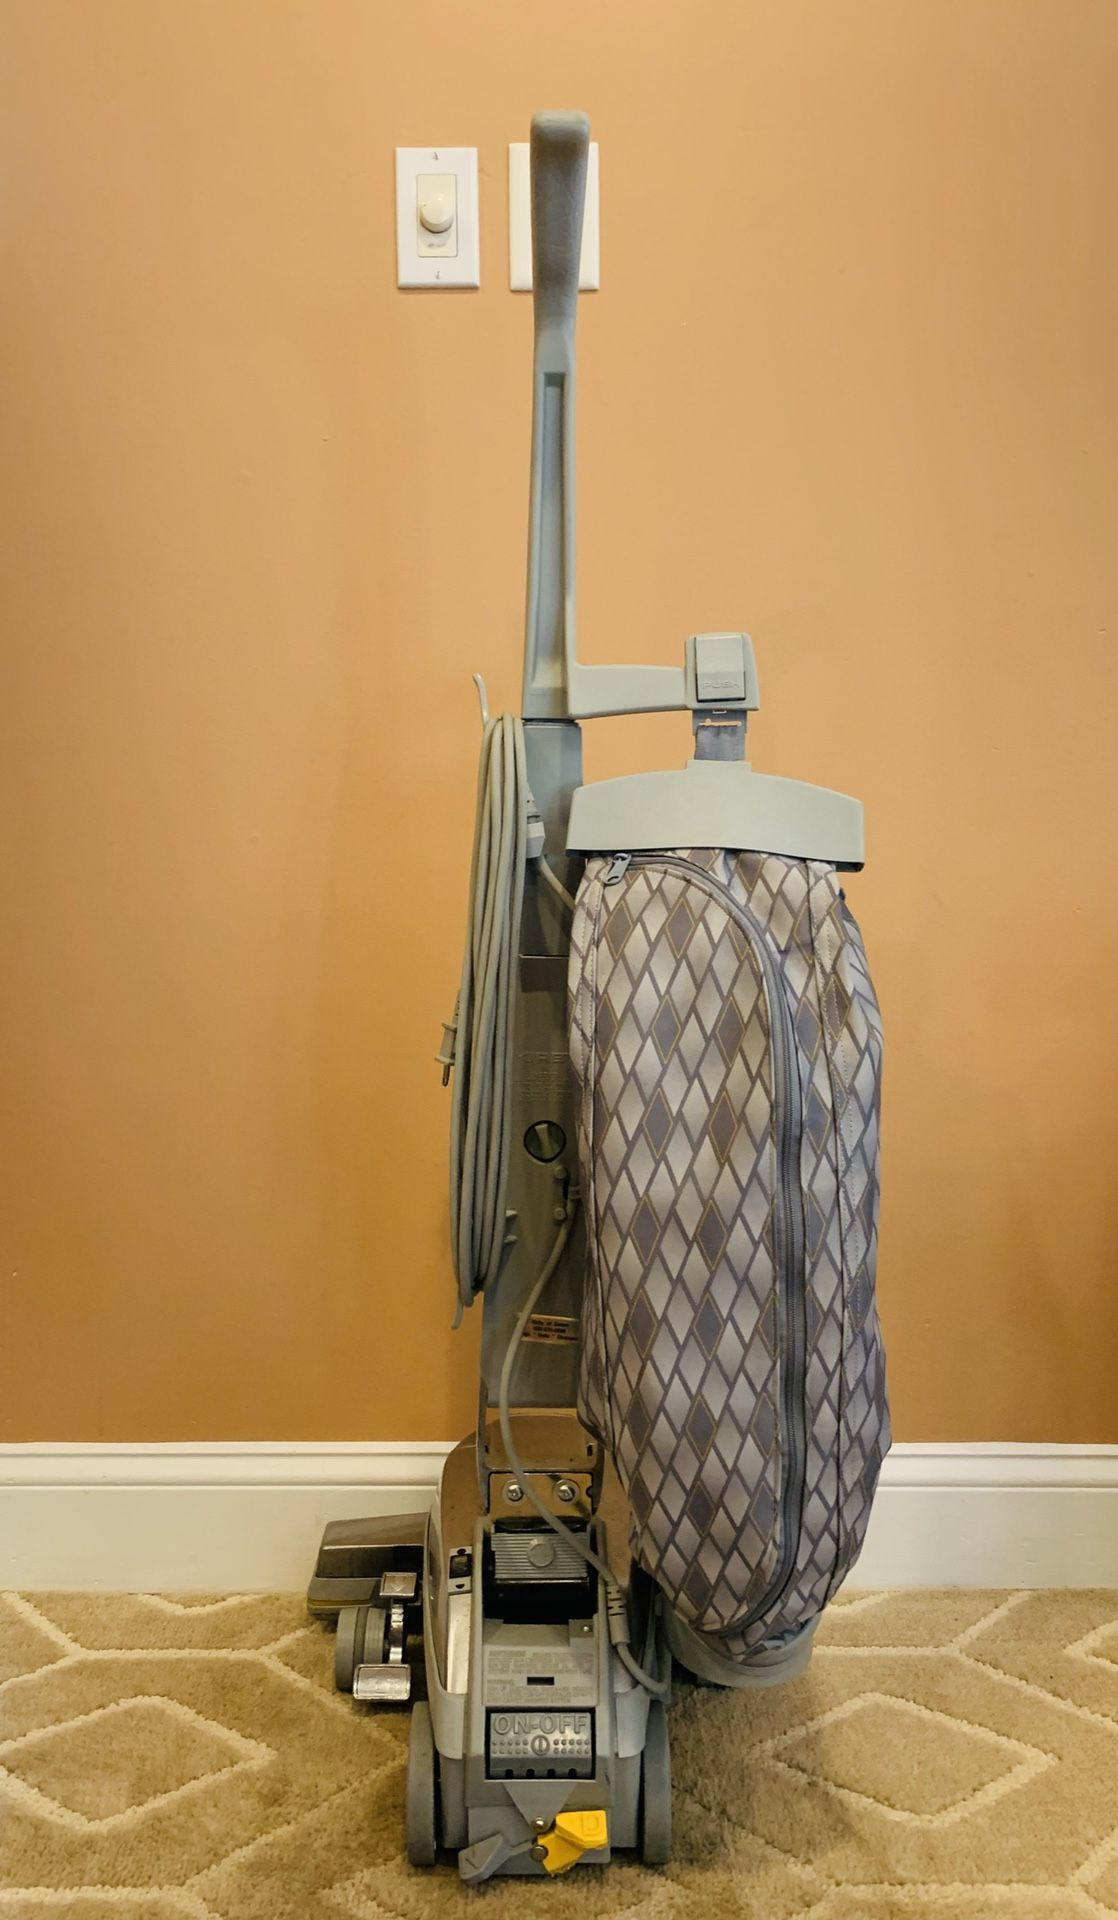 Kirby diamond vacuum cleaner with attachments and shampooer